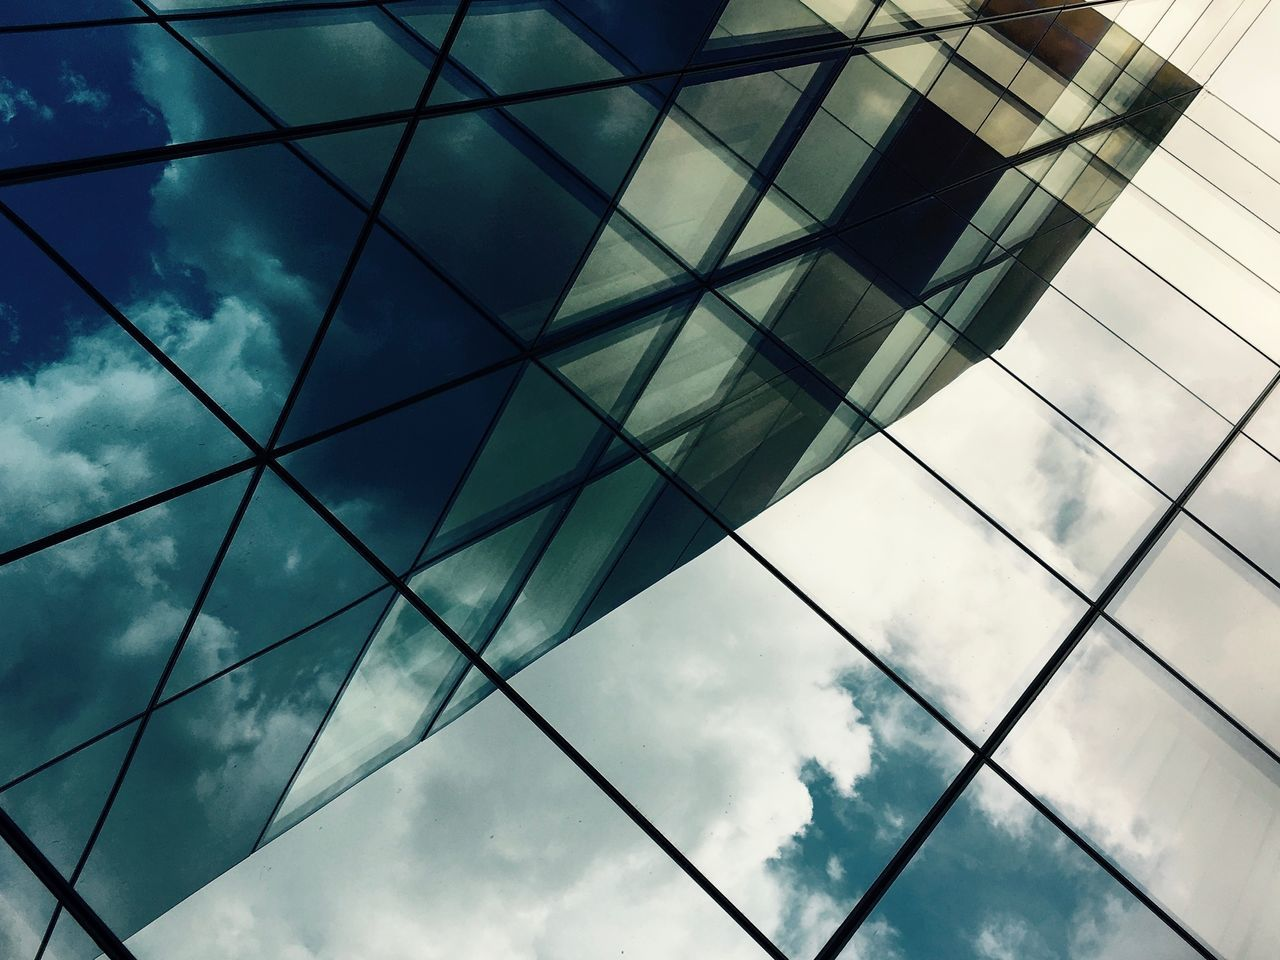 Abstract Architecture Architecture_collection Architecturelovers Berlin Photography Berliner Ansichten Building Exterior Buildings & Sky Built Structure City Lines Lines And Shapes Modern Reflection Reflection_collection Reflections Skyscraper Urban Architecture Urban Exploration Urban Geometry